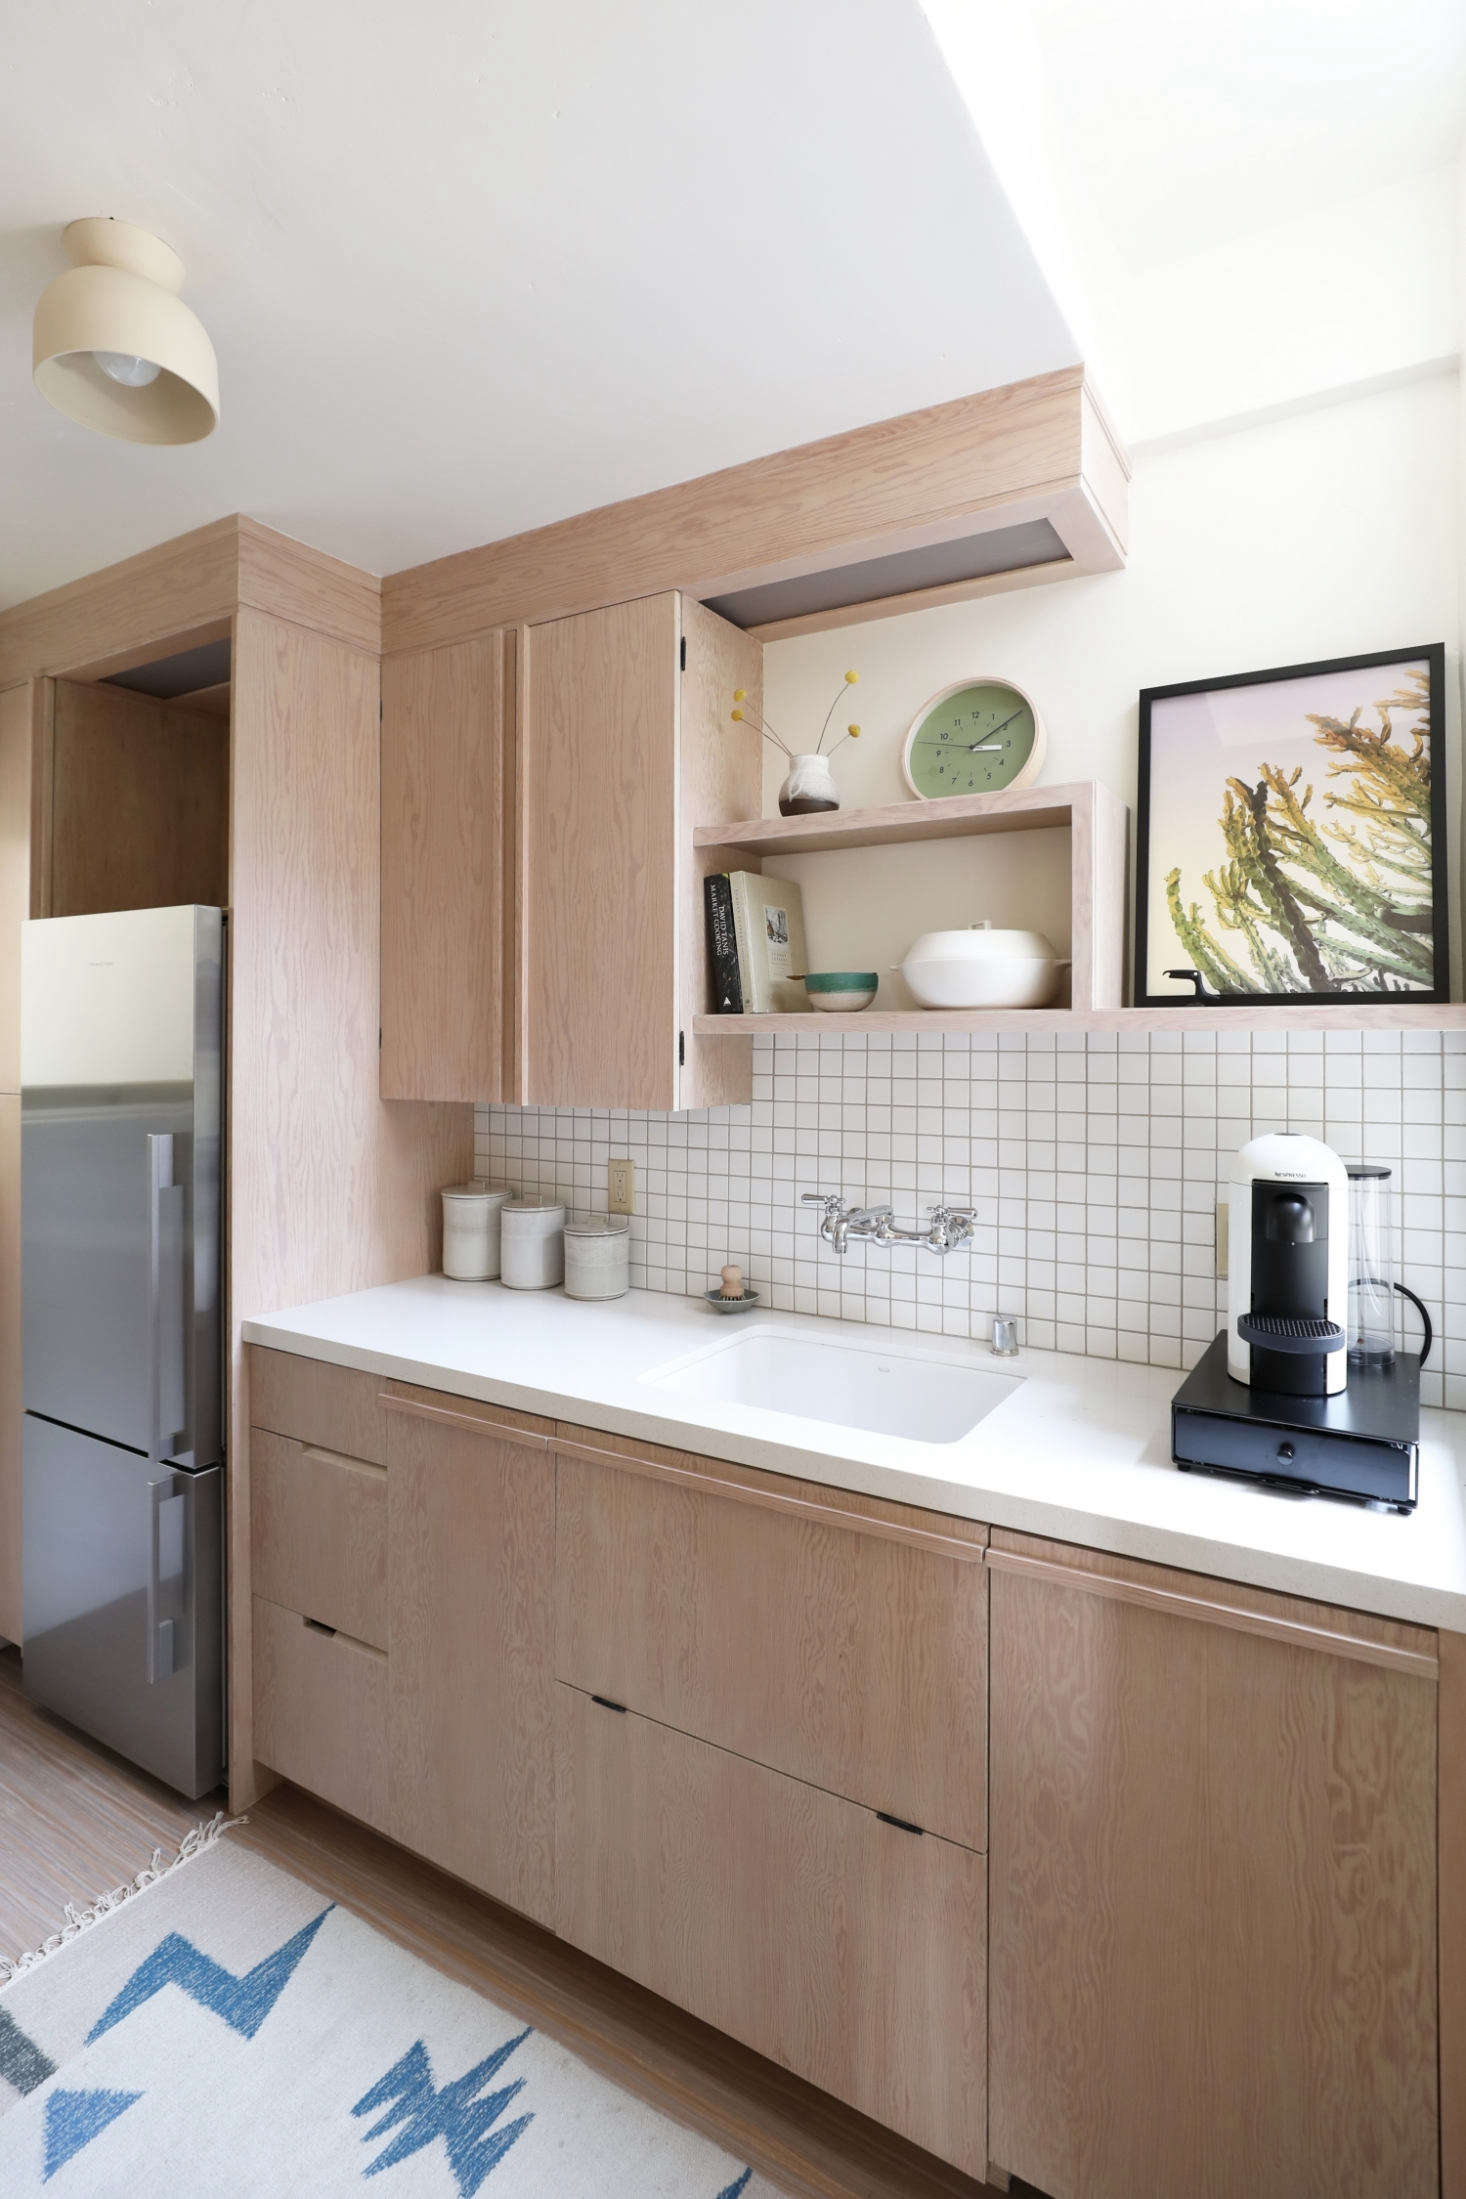 All the cabinetry and built-in shelving throughout the unit were based on designs in the original apartments. (See  Easy Pieces: Wall-Mounted Industrial Faucets for similar faucets.)